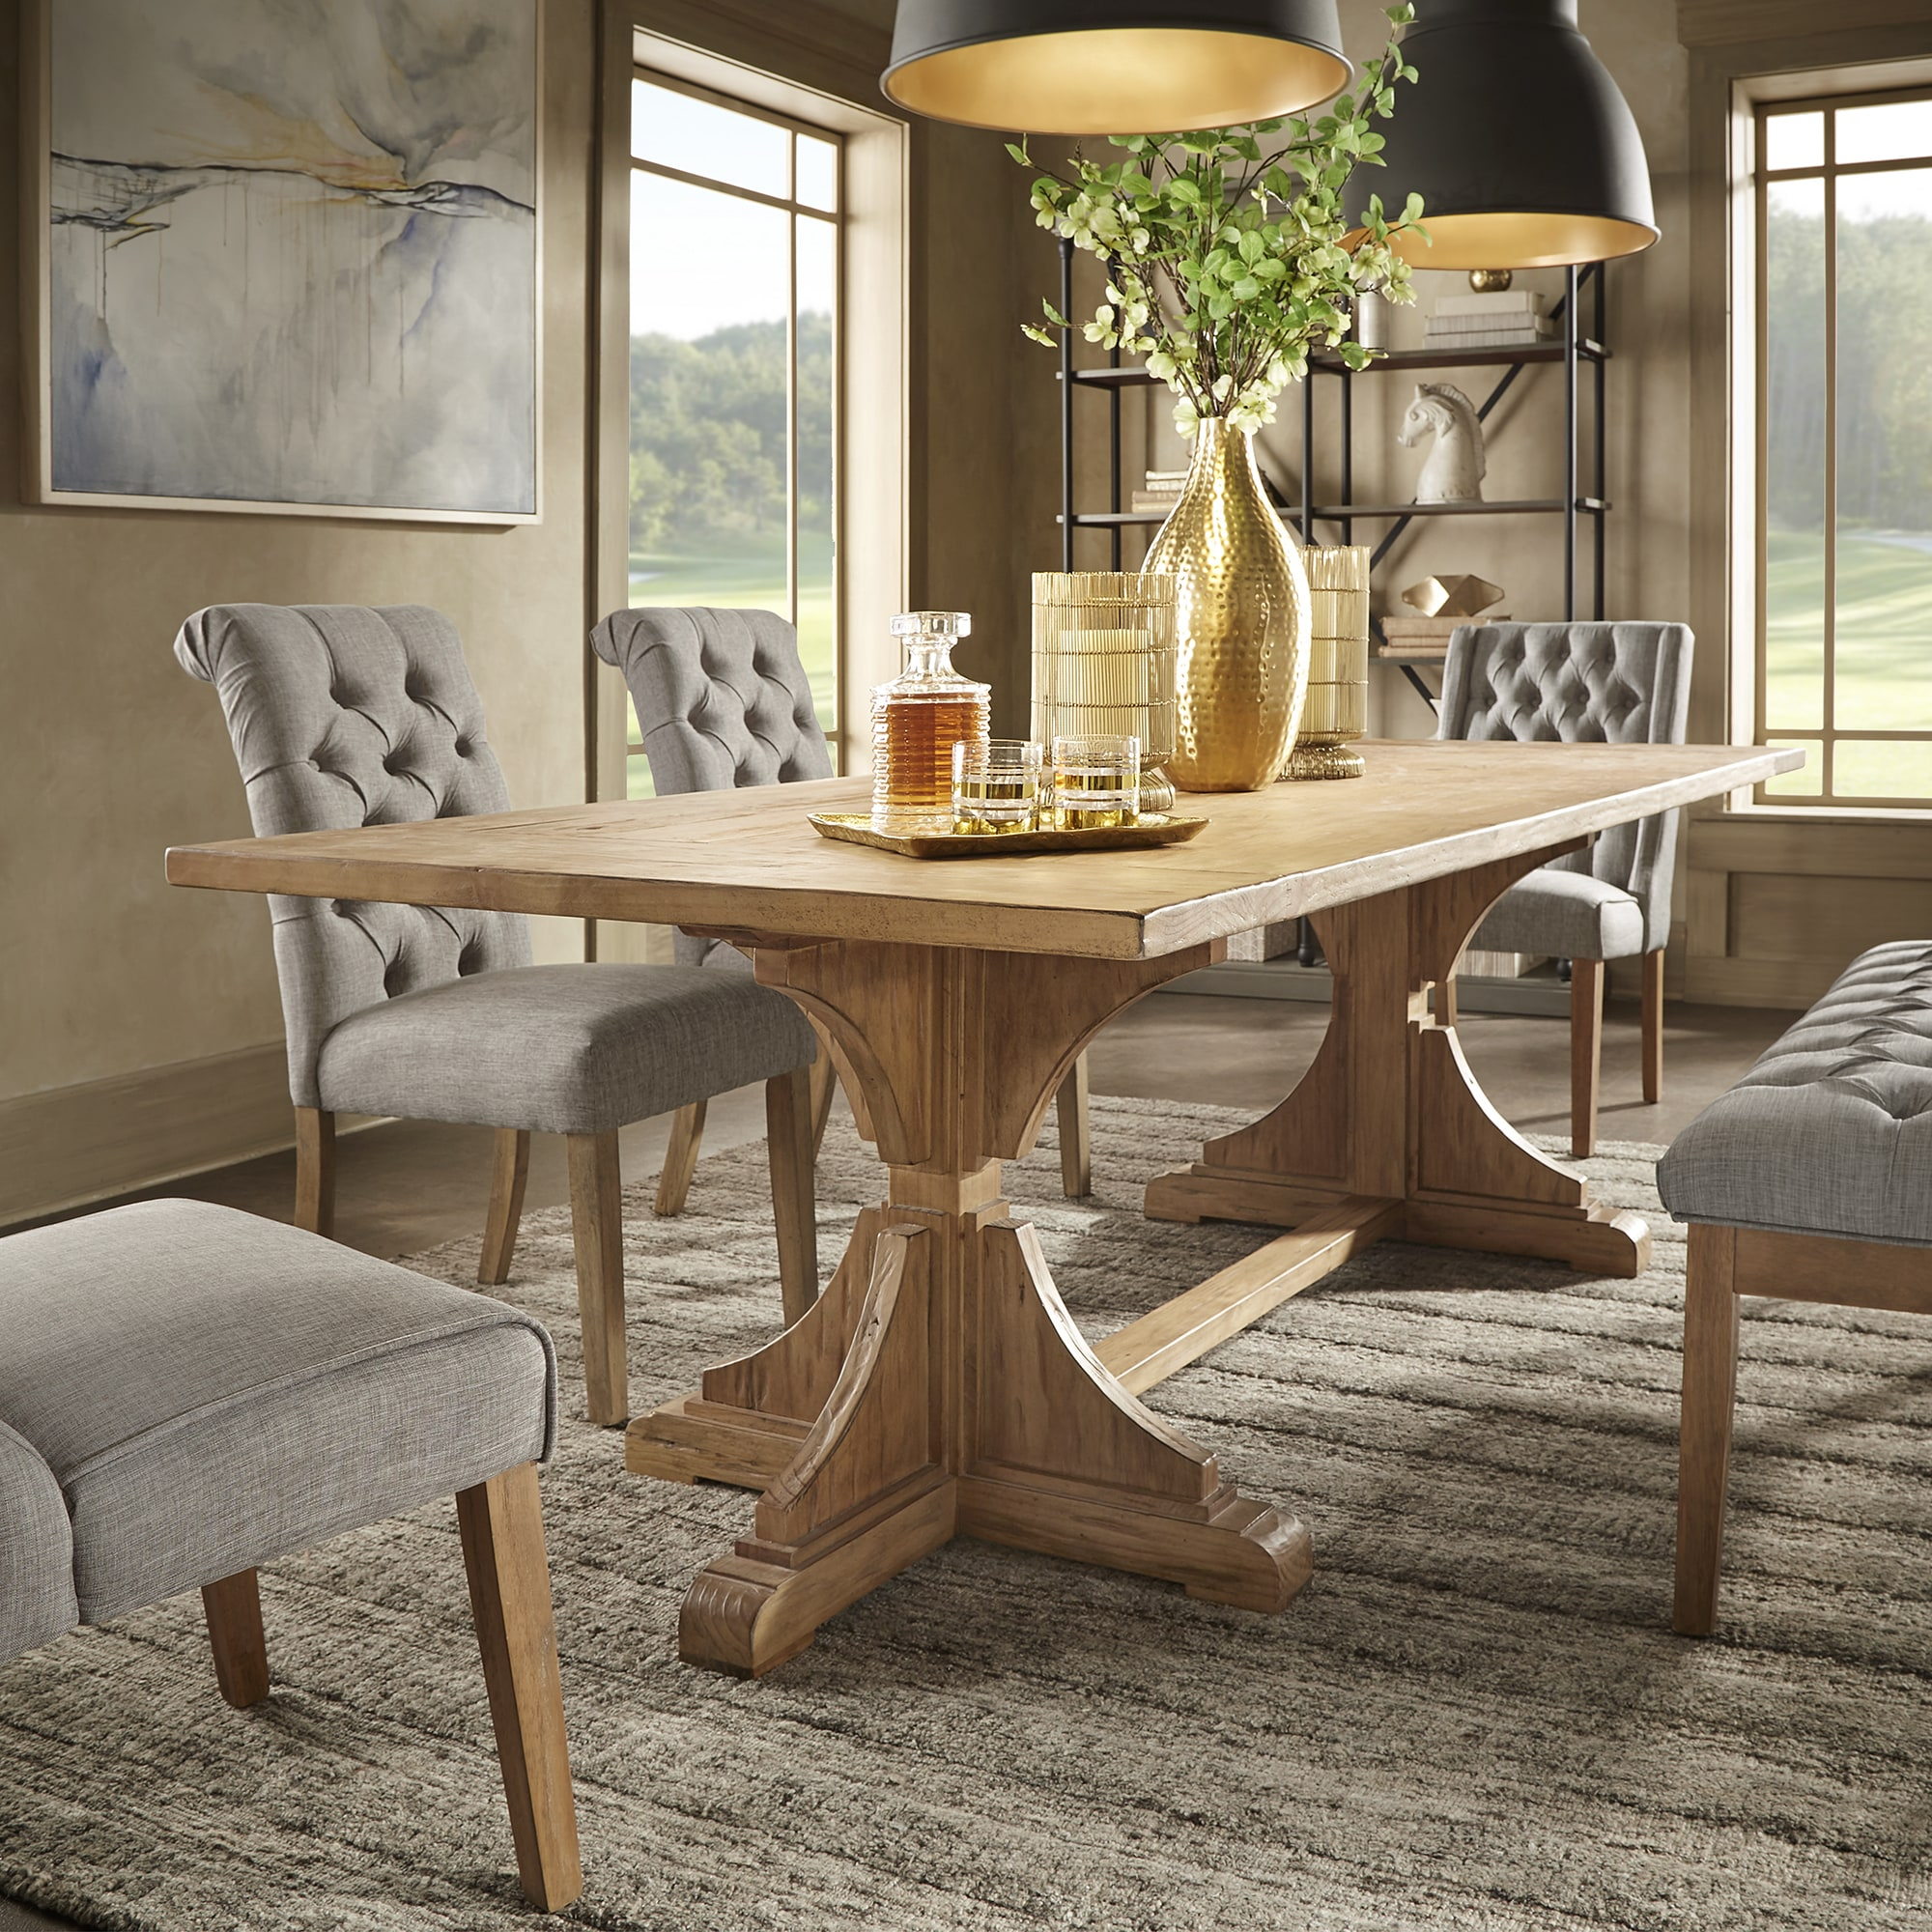 Yarla Reclaimed Natural Finish 96 Inch Trestle Dining Table By Inspire Q